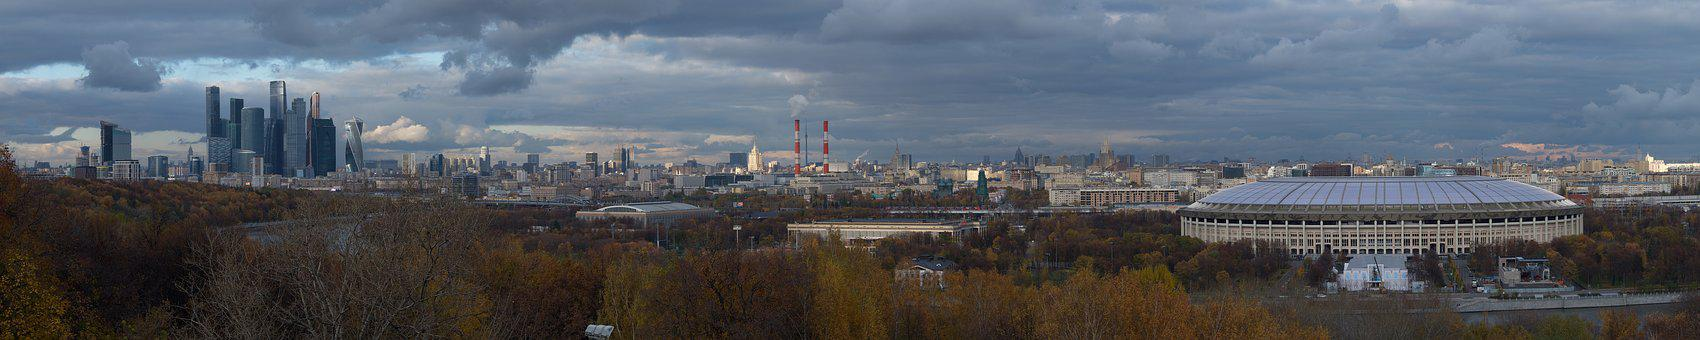 Moscow, Skyline, Panorama, Hills, Russia, City, Urban